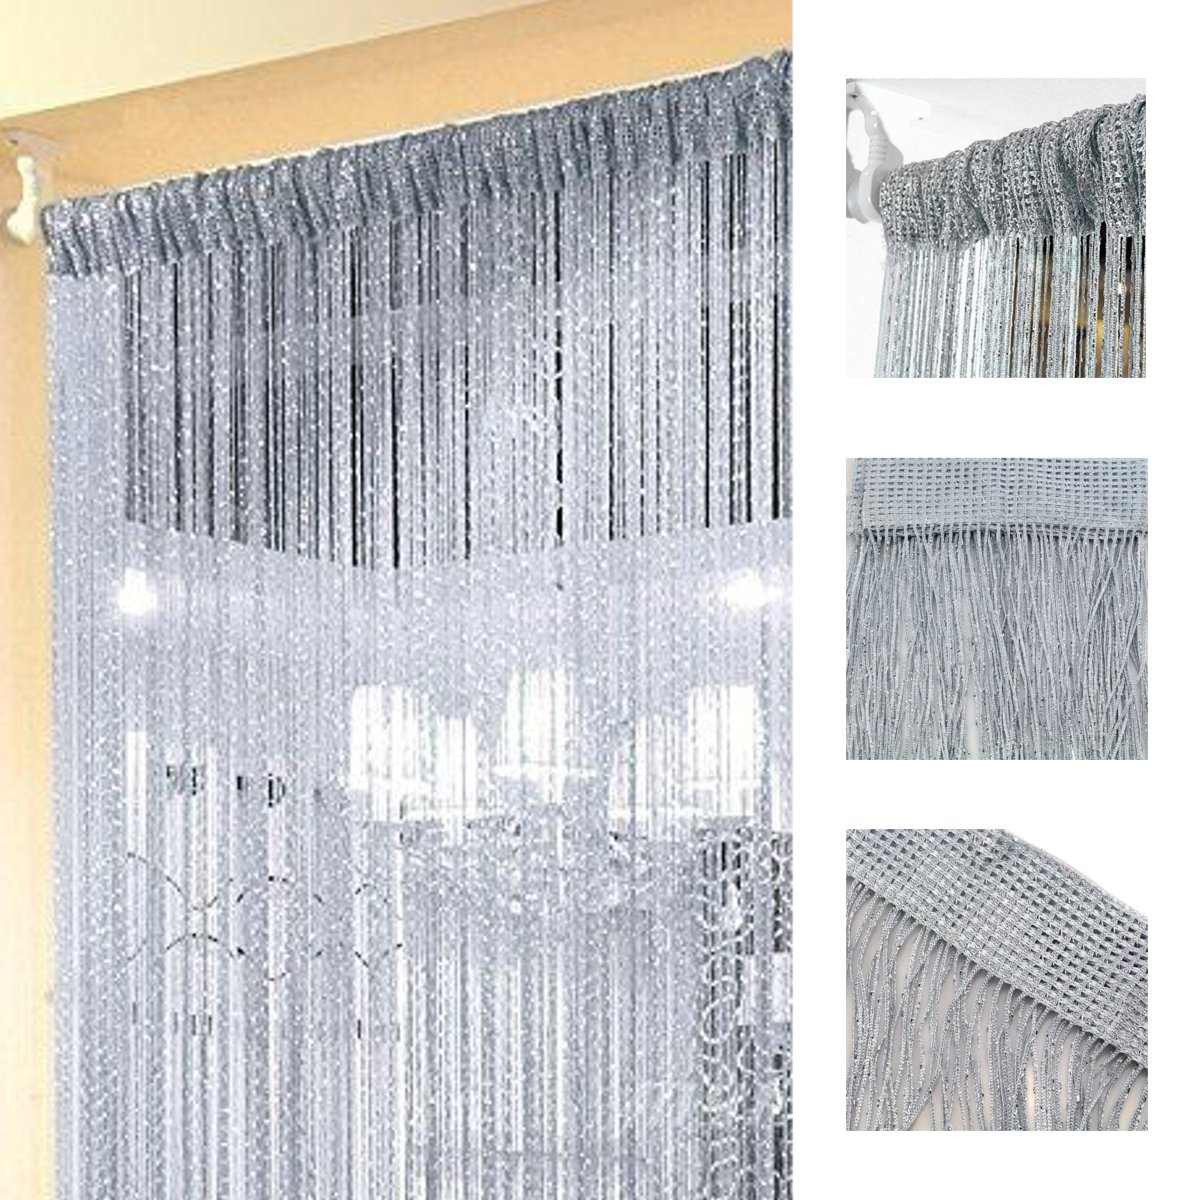 Asewin Decorative Door String Curtain Wall Panel Fringe Window Room Divider Blind Divider Crystal Tassel Screen Home